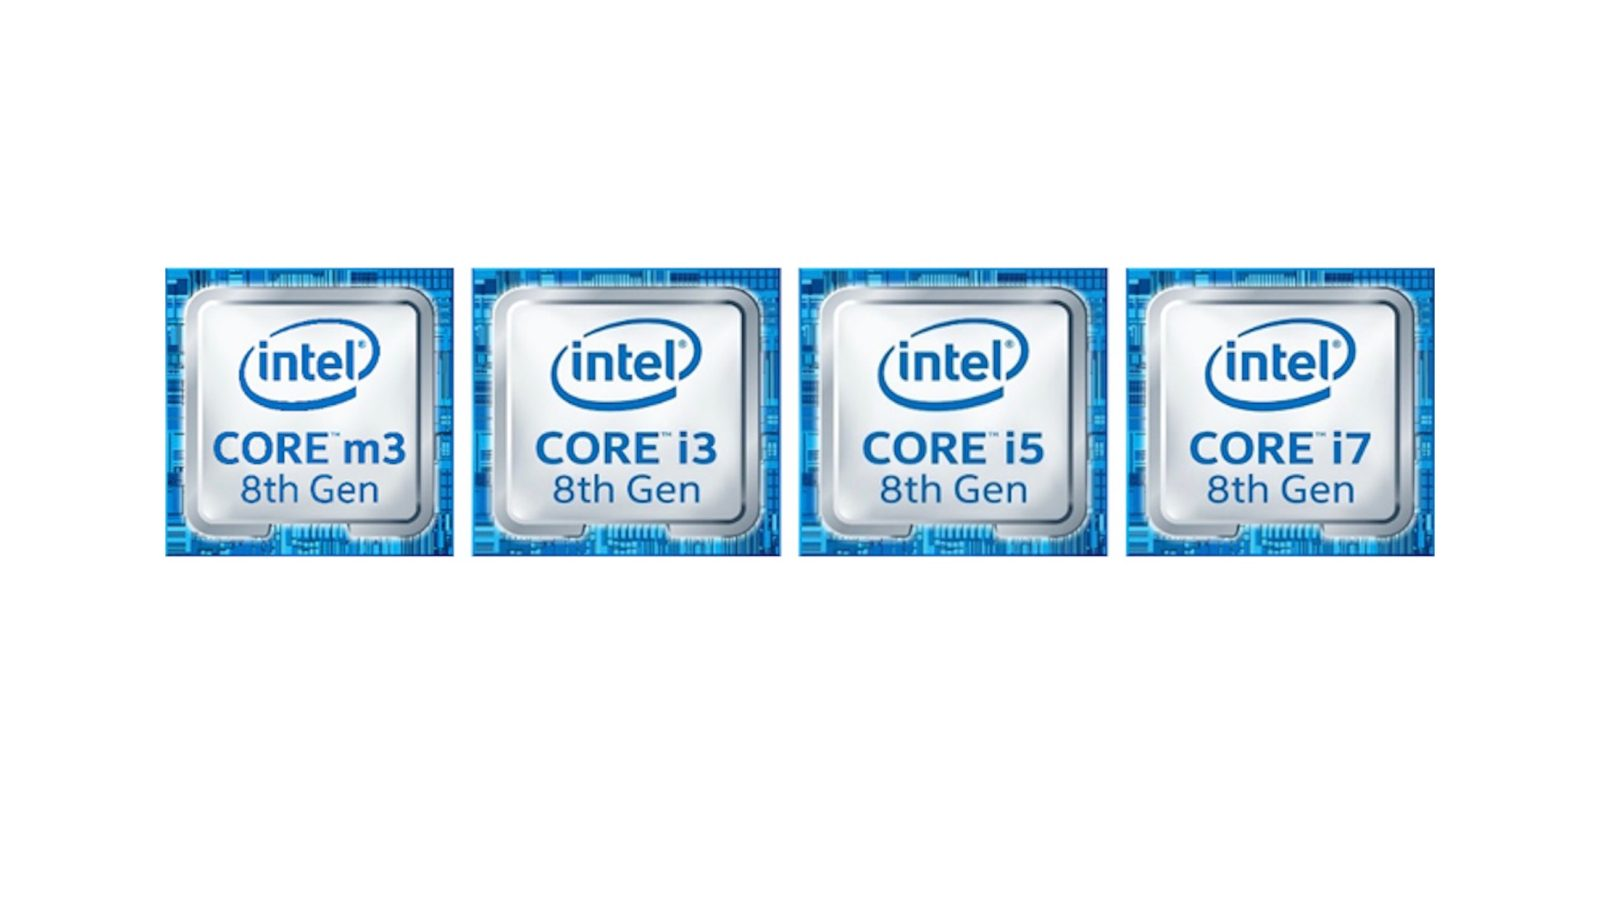 Intel's latest CPUs tout up to 16 hour battery life & could